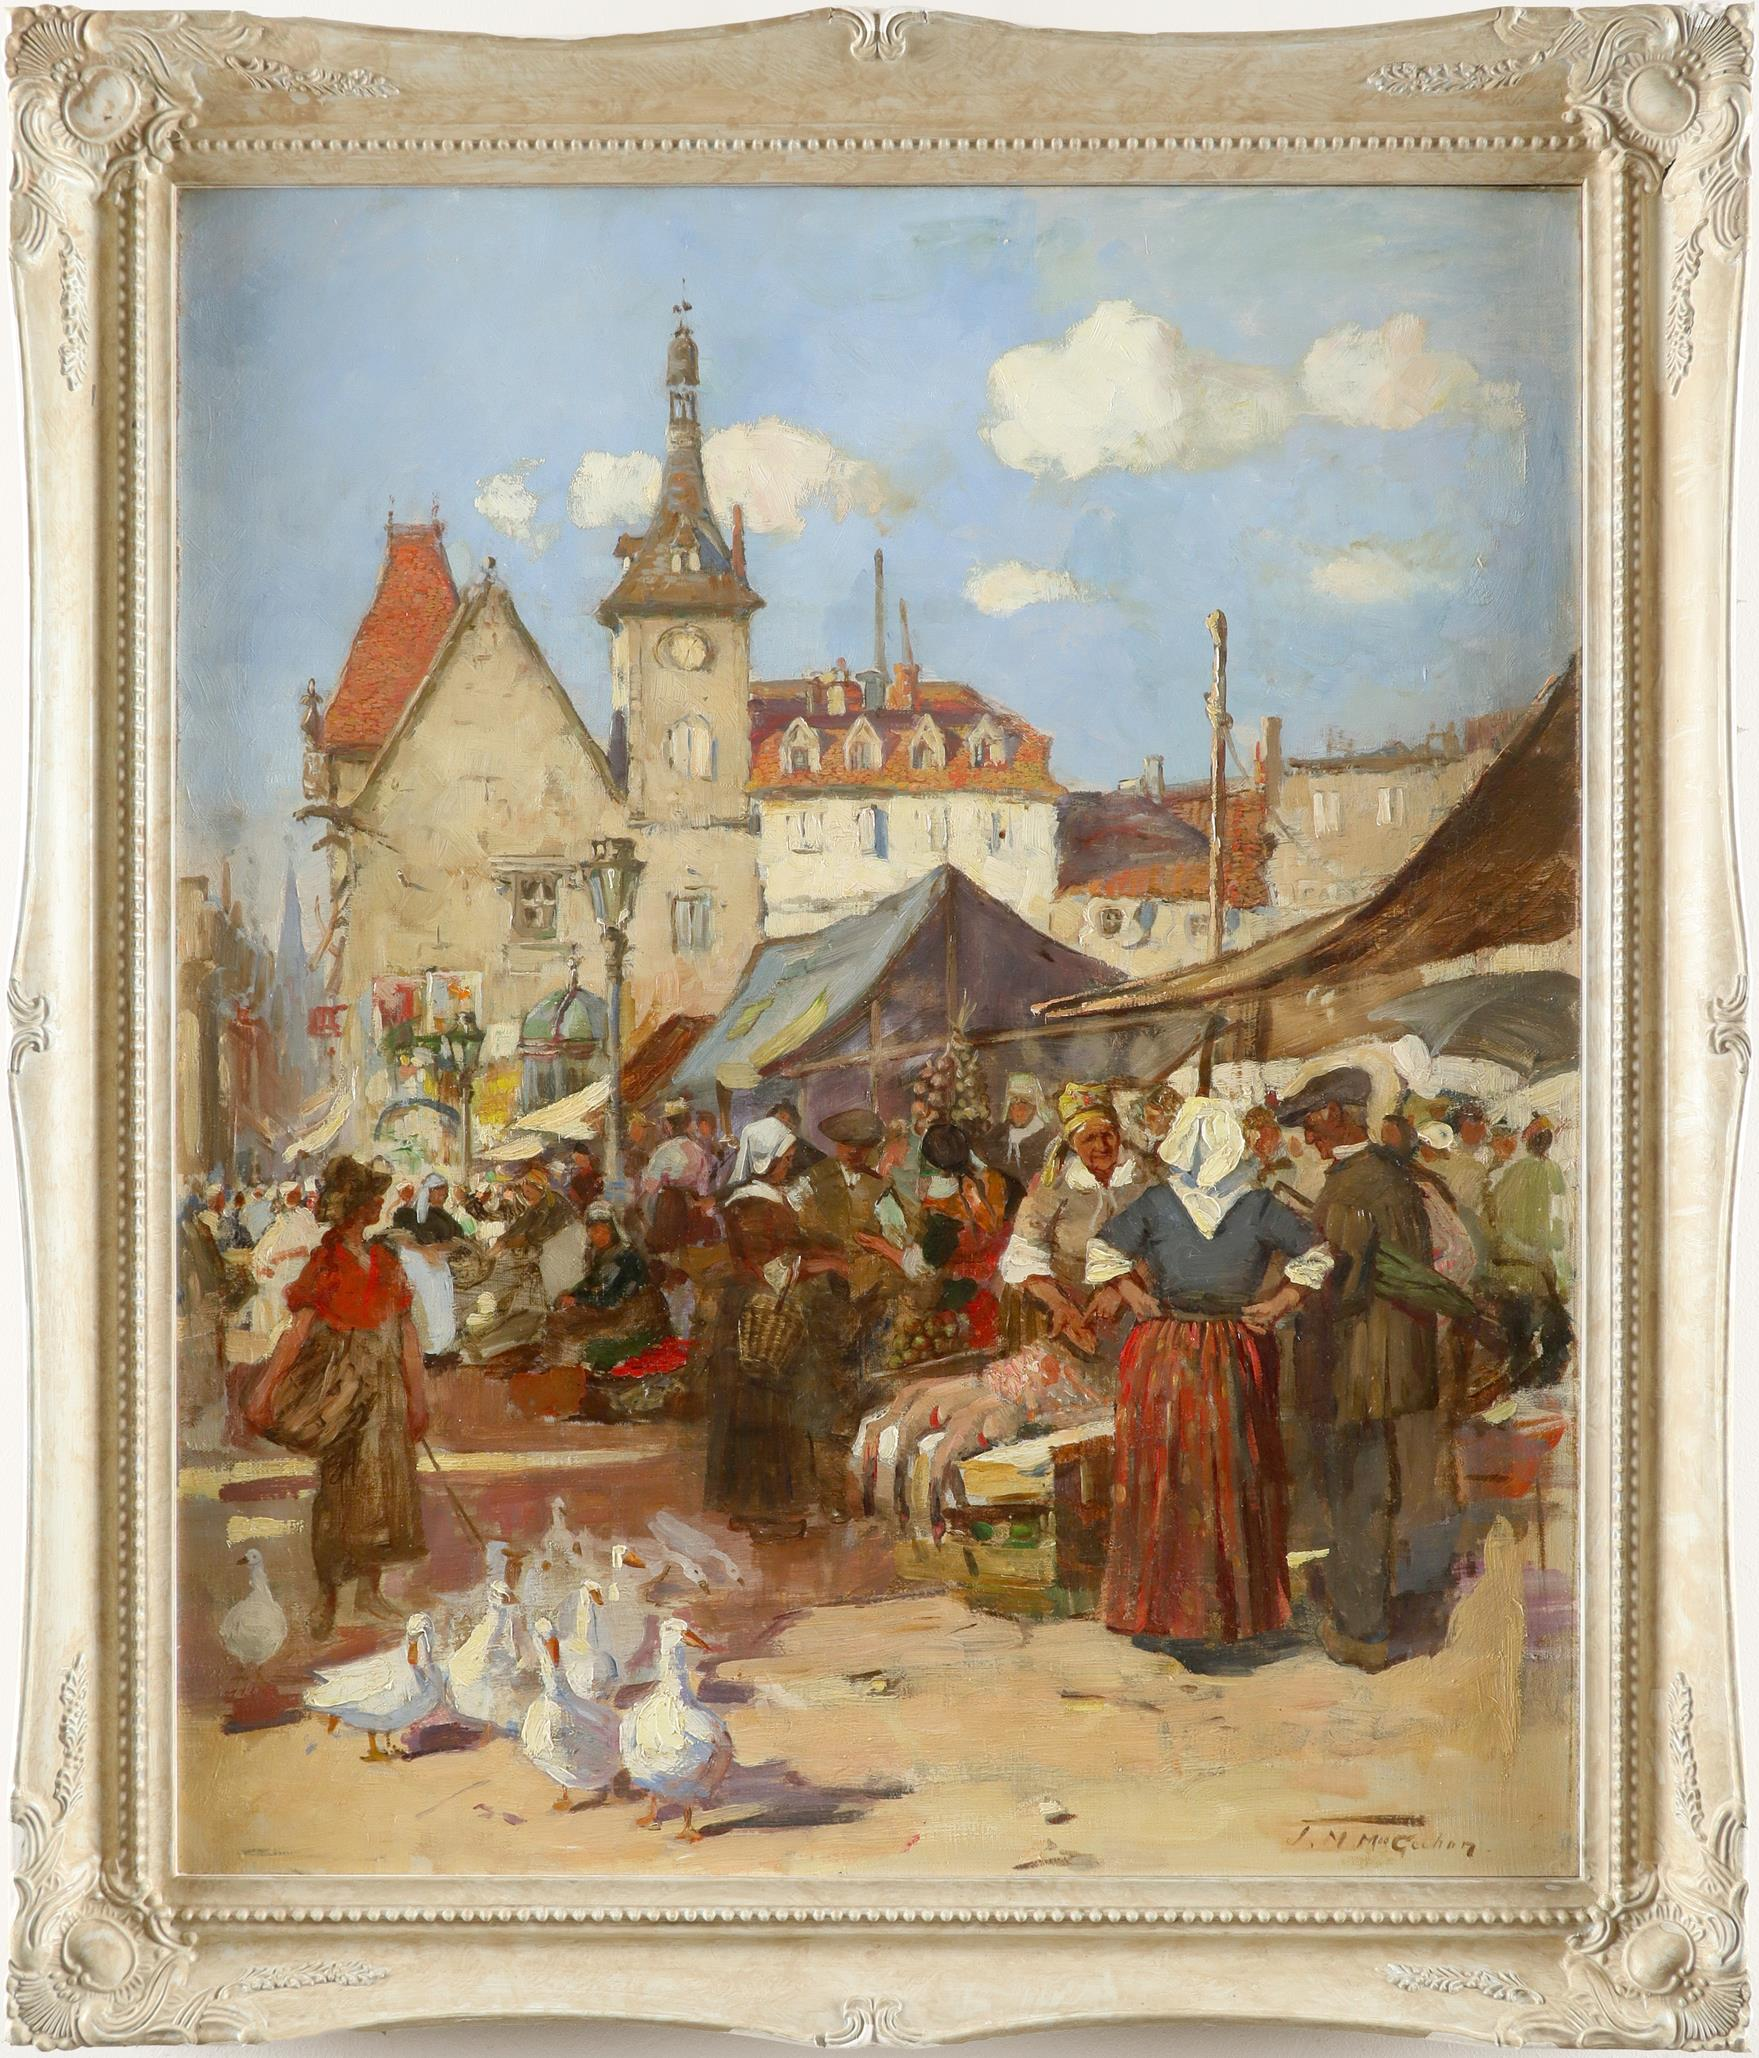 Jessie M. McGeehan (Scottish 1872-1950) Market day Signed J.M.McGeehan (lower right) Oil on canvas - Image 2 of 3